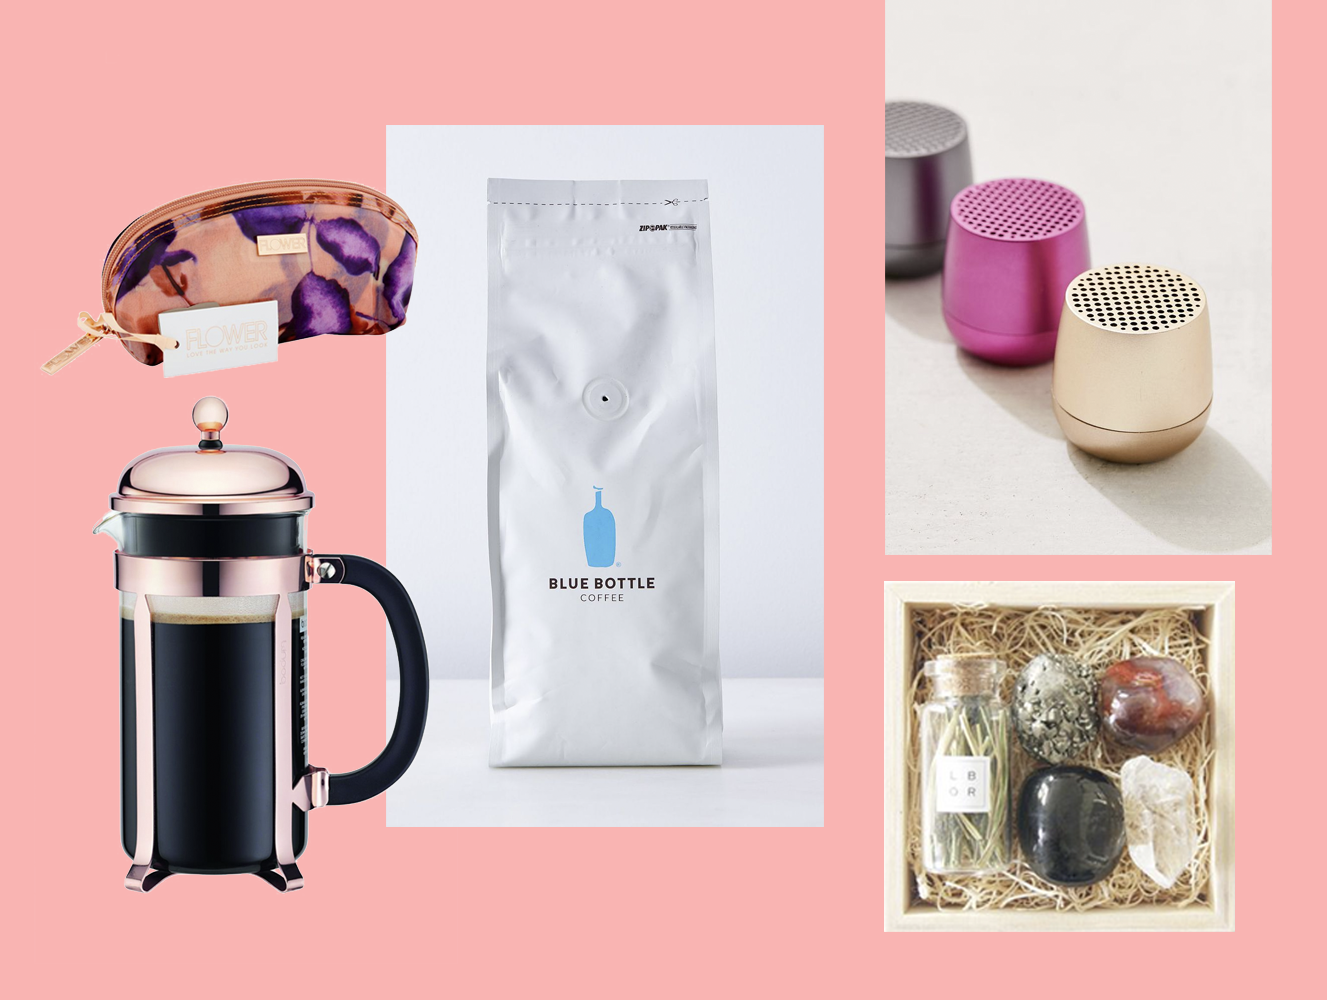 35 Good Last Minute Christmas Gifts - Best Ideas for Last Minute ...